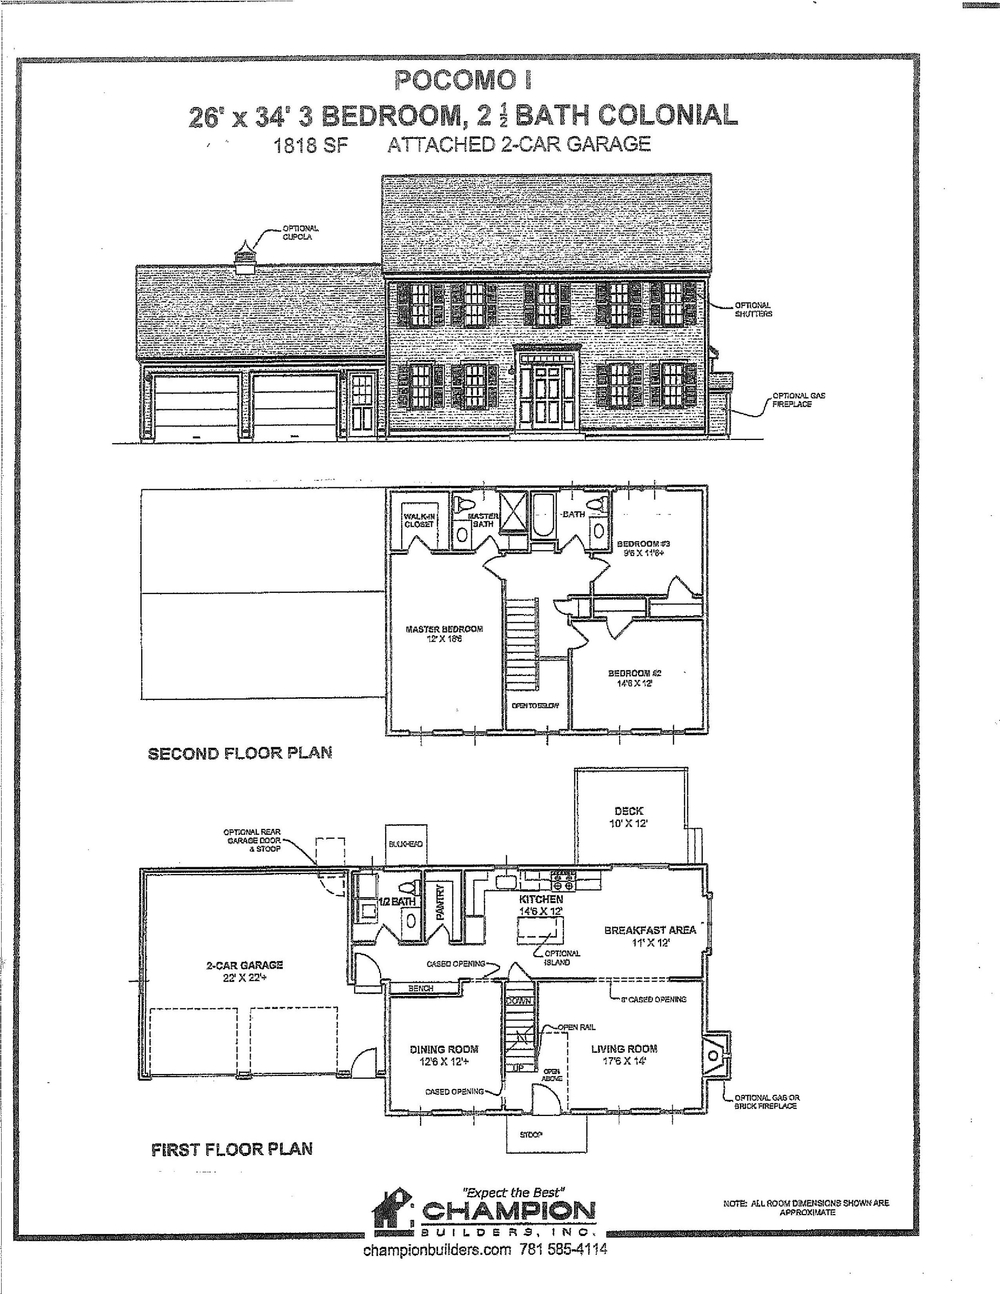 Pocomo I Floor Plan Final jpeg.jpg